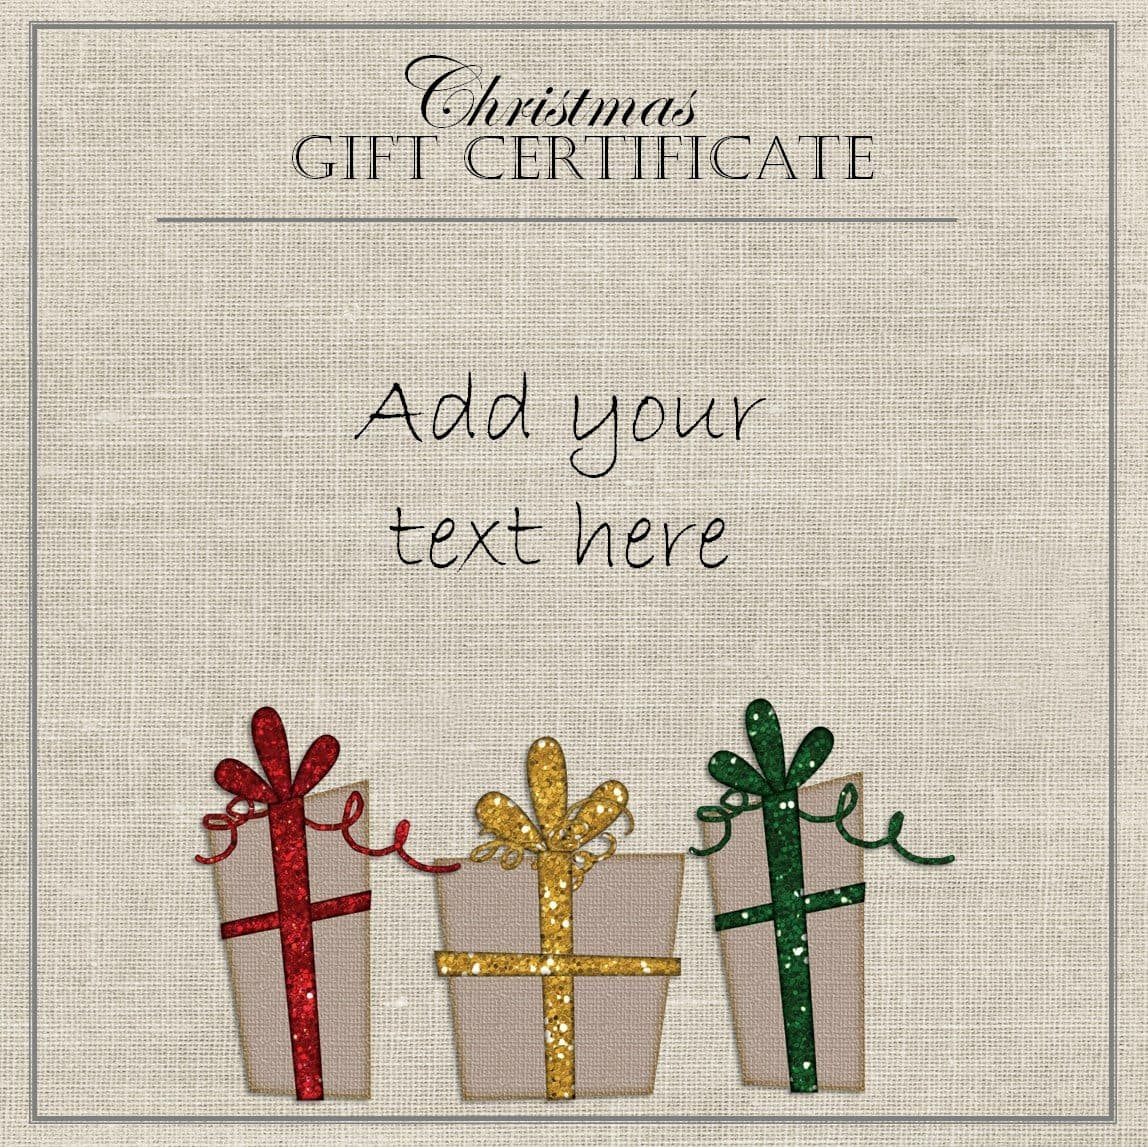 Elegant Gift Certificate Template With Three Gifts With Red, Yellow And  Green Ribbons  Free Download Certificate Templates